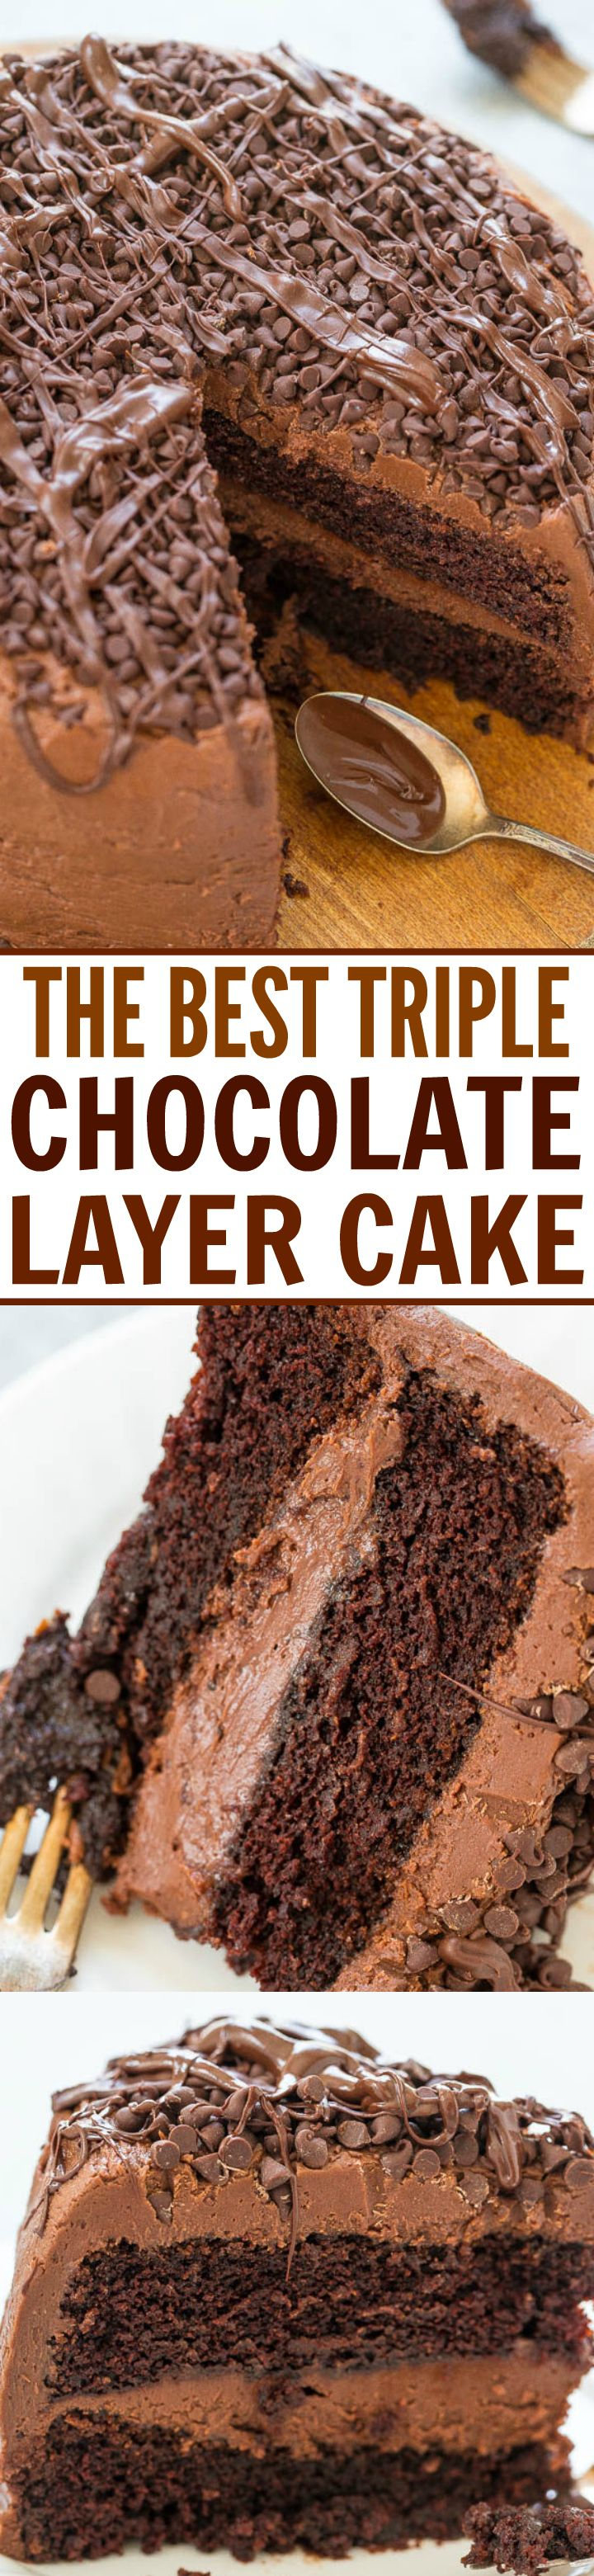 Best 25 2 layer cakes ideas on Pinterest 3 layer cakes